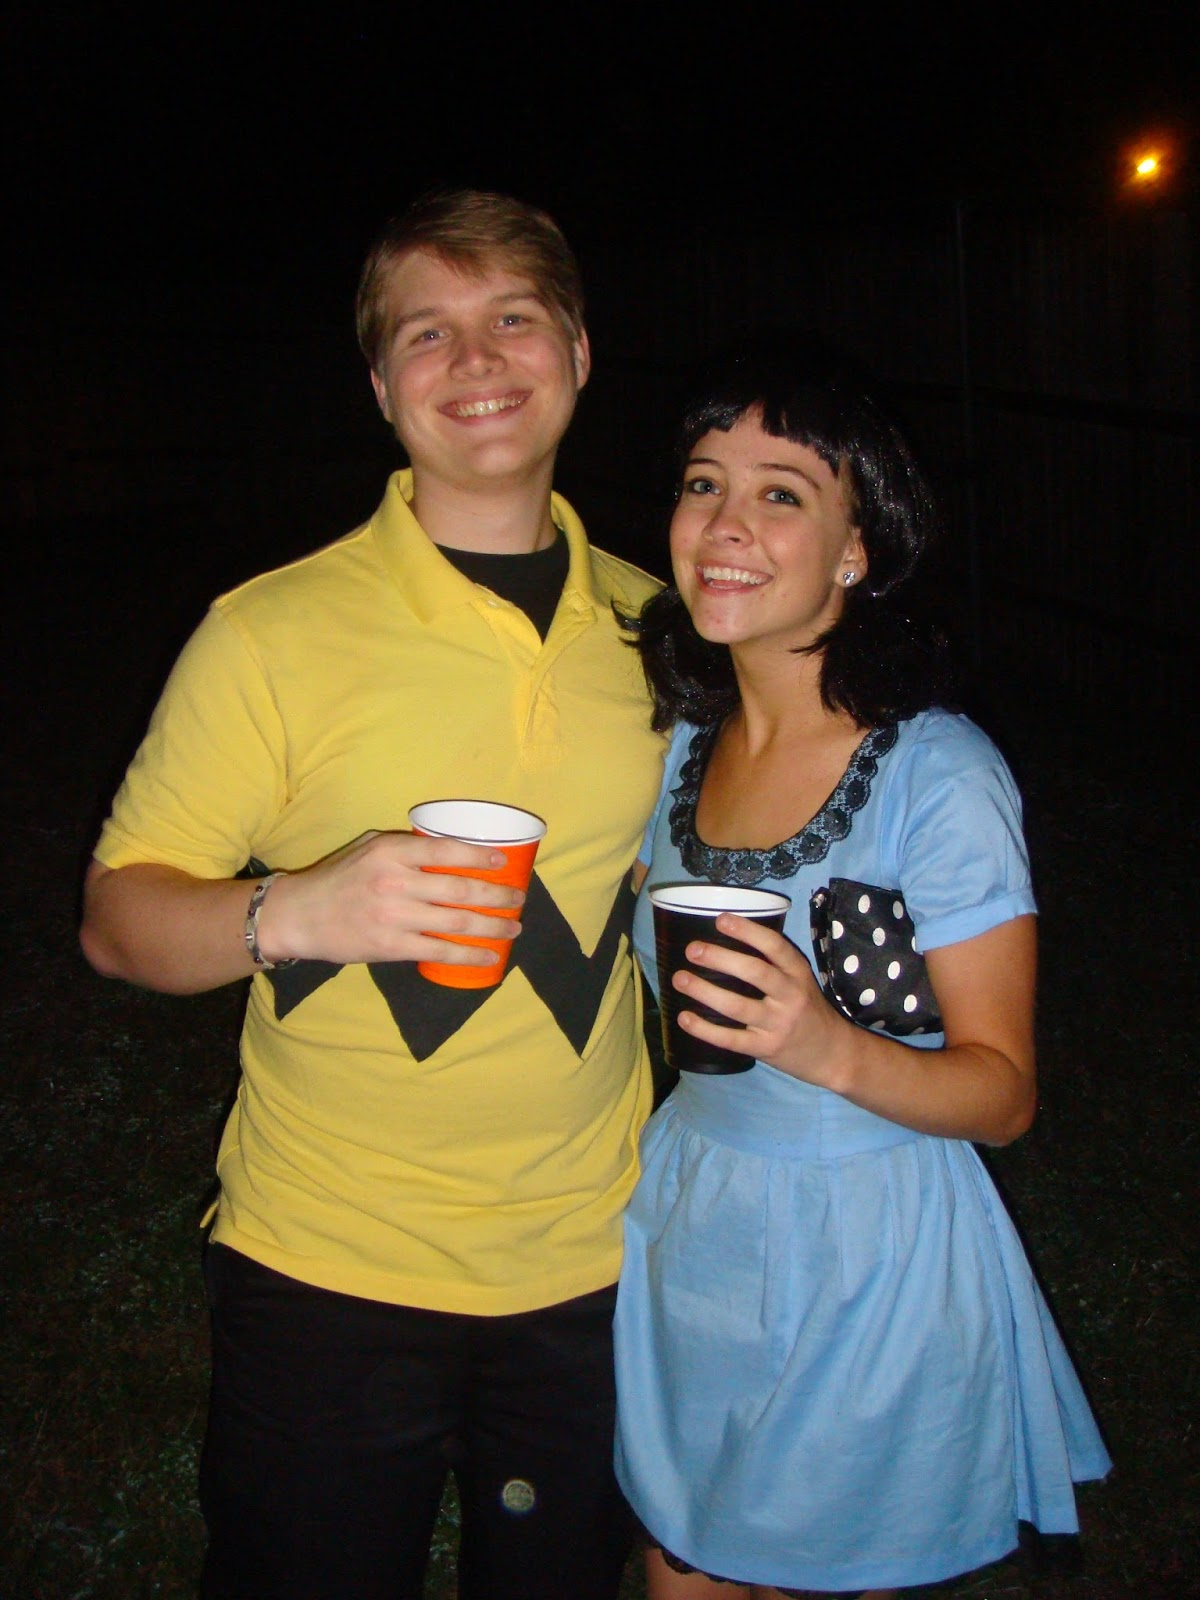 This was one of my very first sewing projects when I sewed this dress by hand and Mattu0027s costume was easy with black shorts a cheap yellow polo and some ...  sc 1 st  magenta and lime & magenta and lime: couple costume ideas